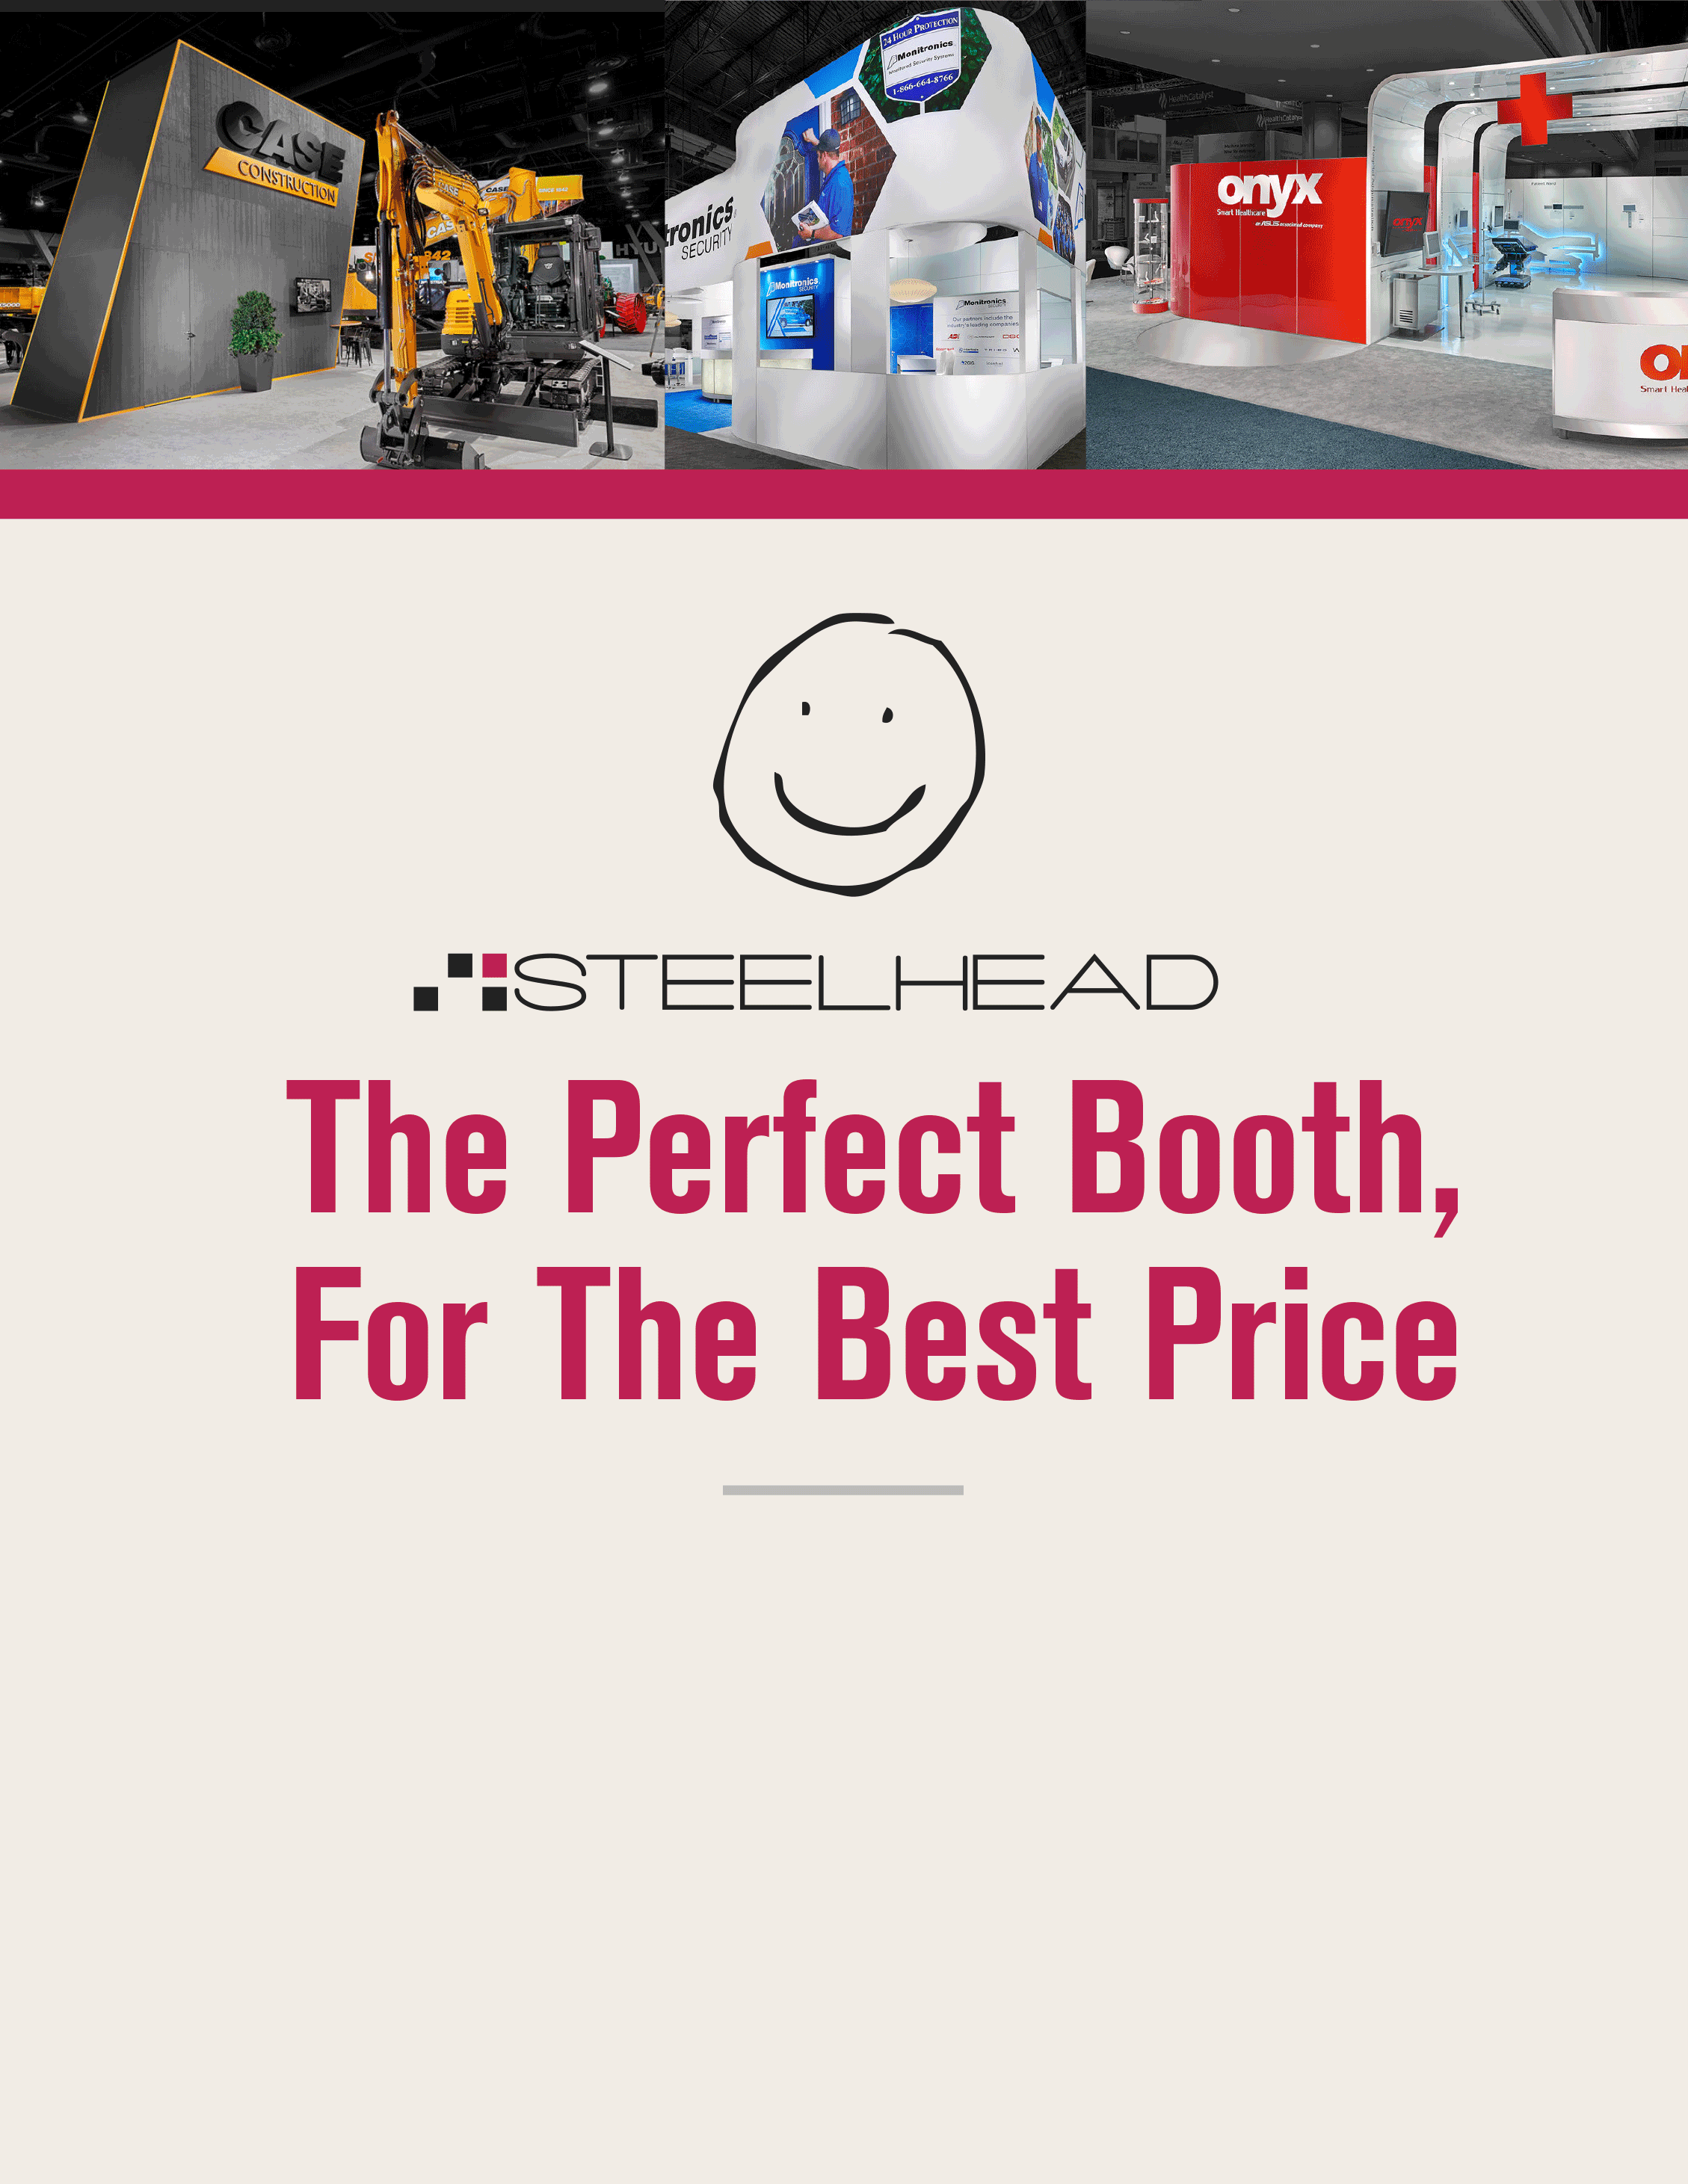 The Perfect Booth, For The Best Price